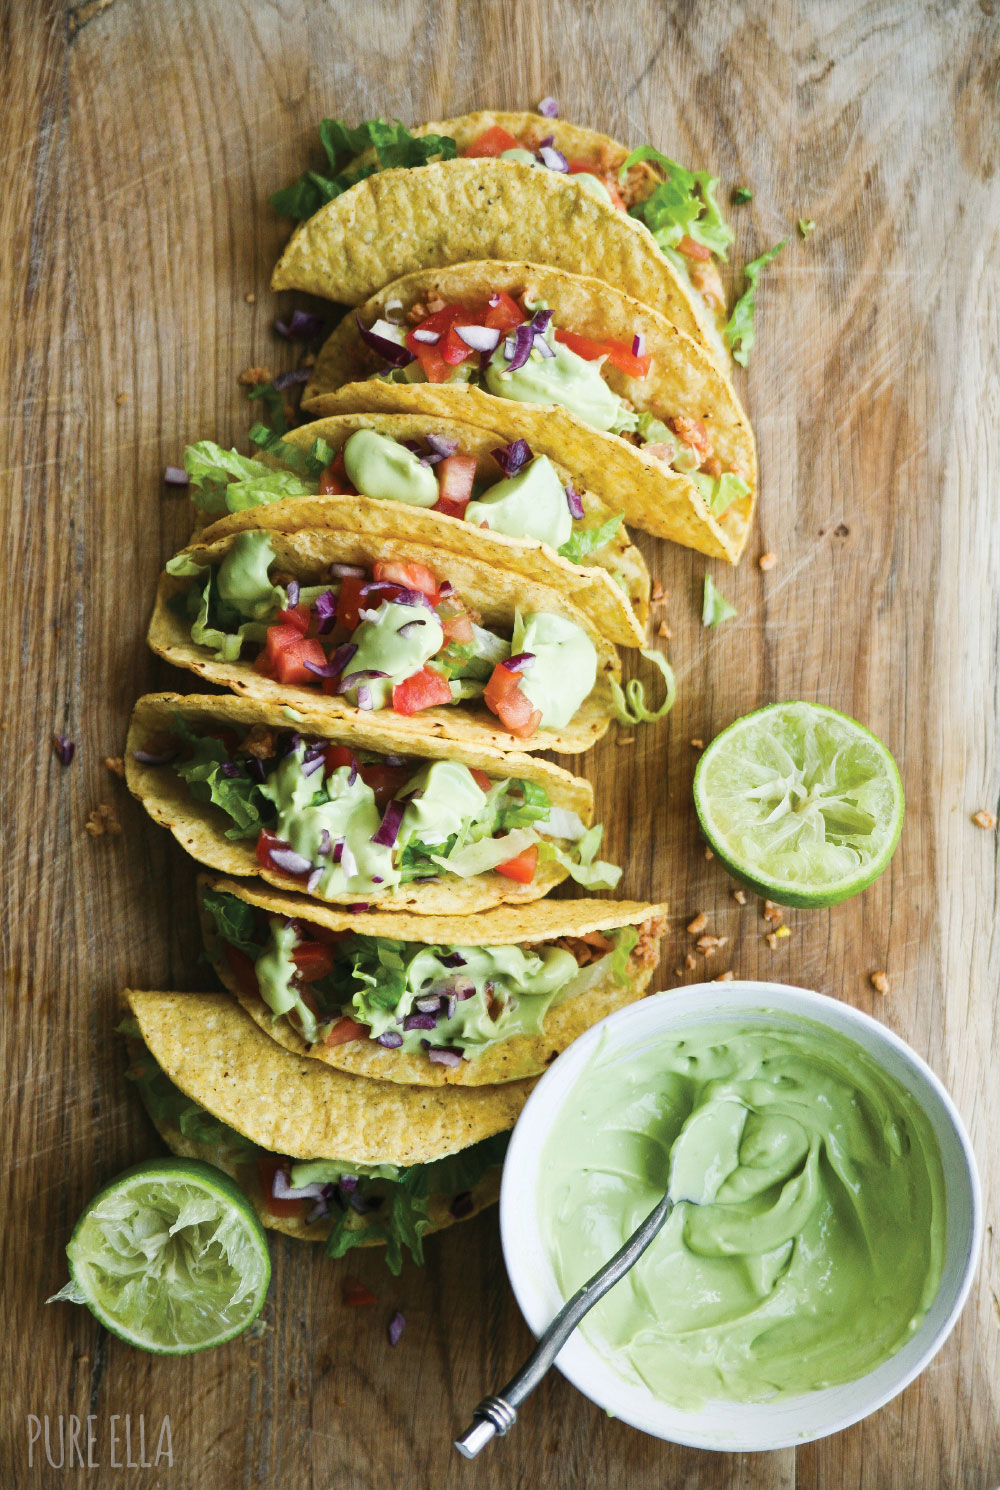 Pure-Ella-gluten-free-and-vegan-Veggie-Protein-Tacos-with-avocado-lime-cream2